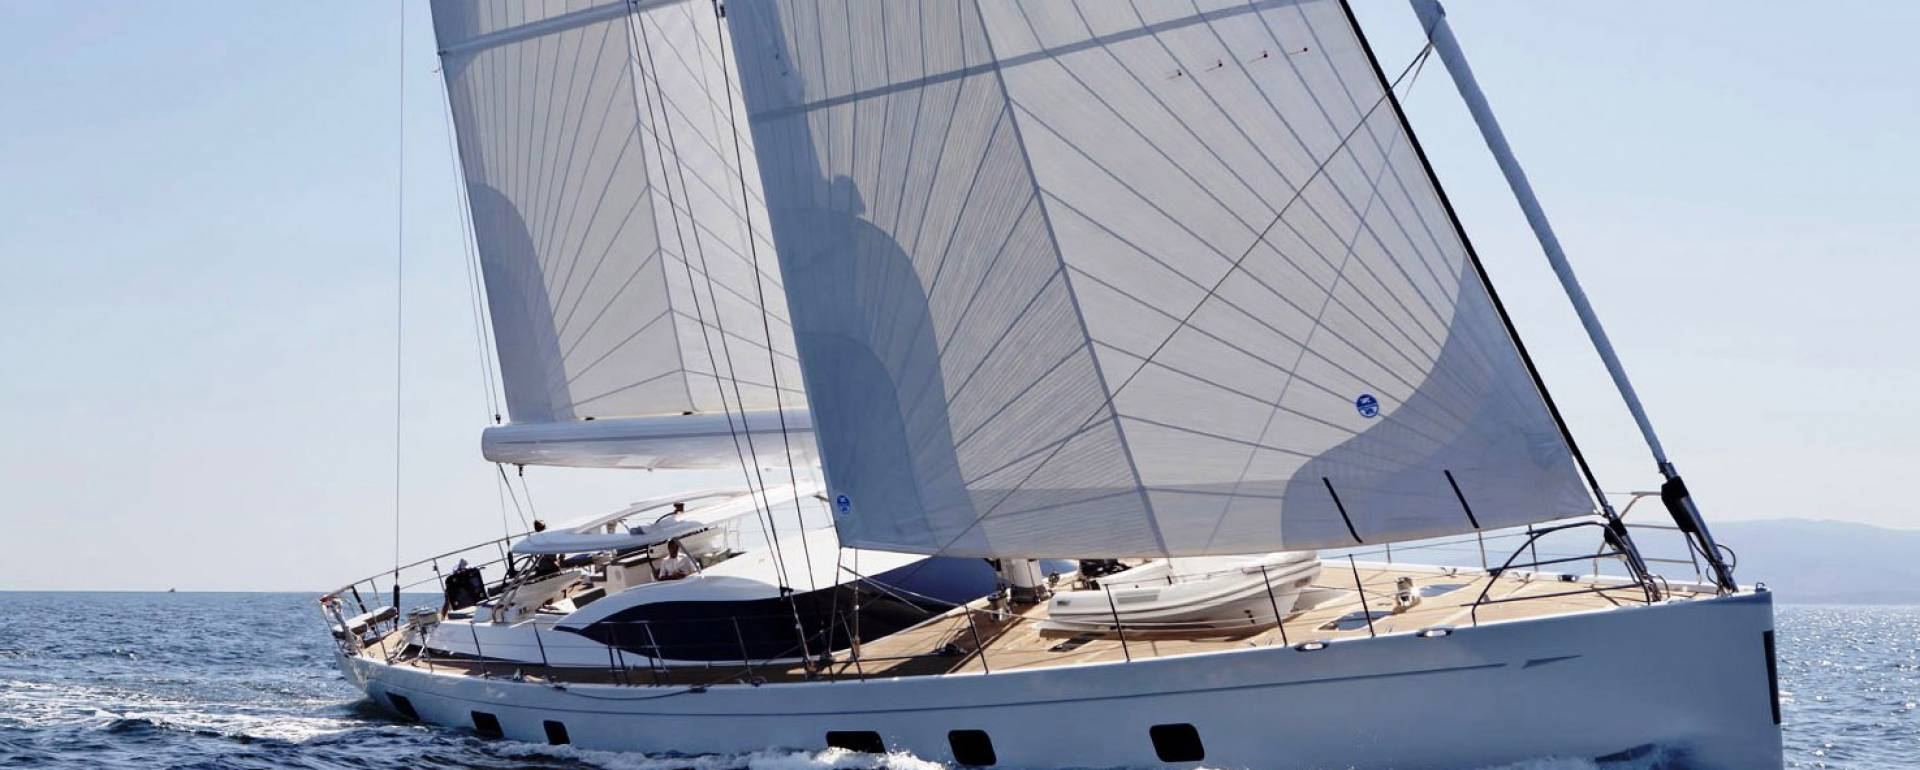 Sailboat charter Croatia - Sailing Croatia